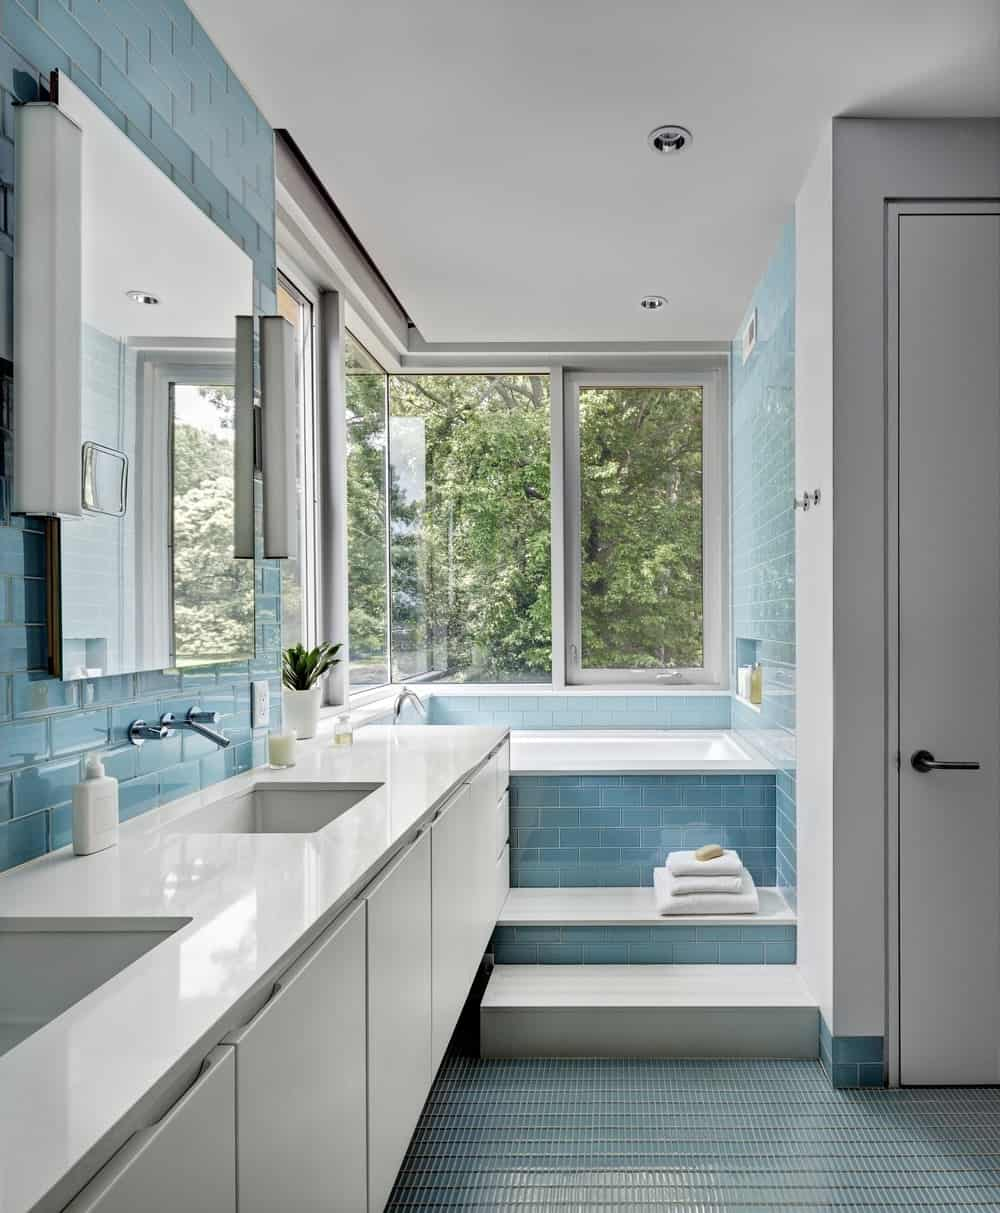 This primary bathroom features stylish blue tiles floors and walls. The room also offers a corner tub near the windows and a double sink.